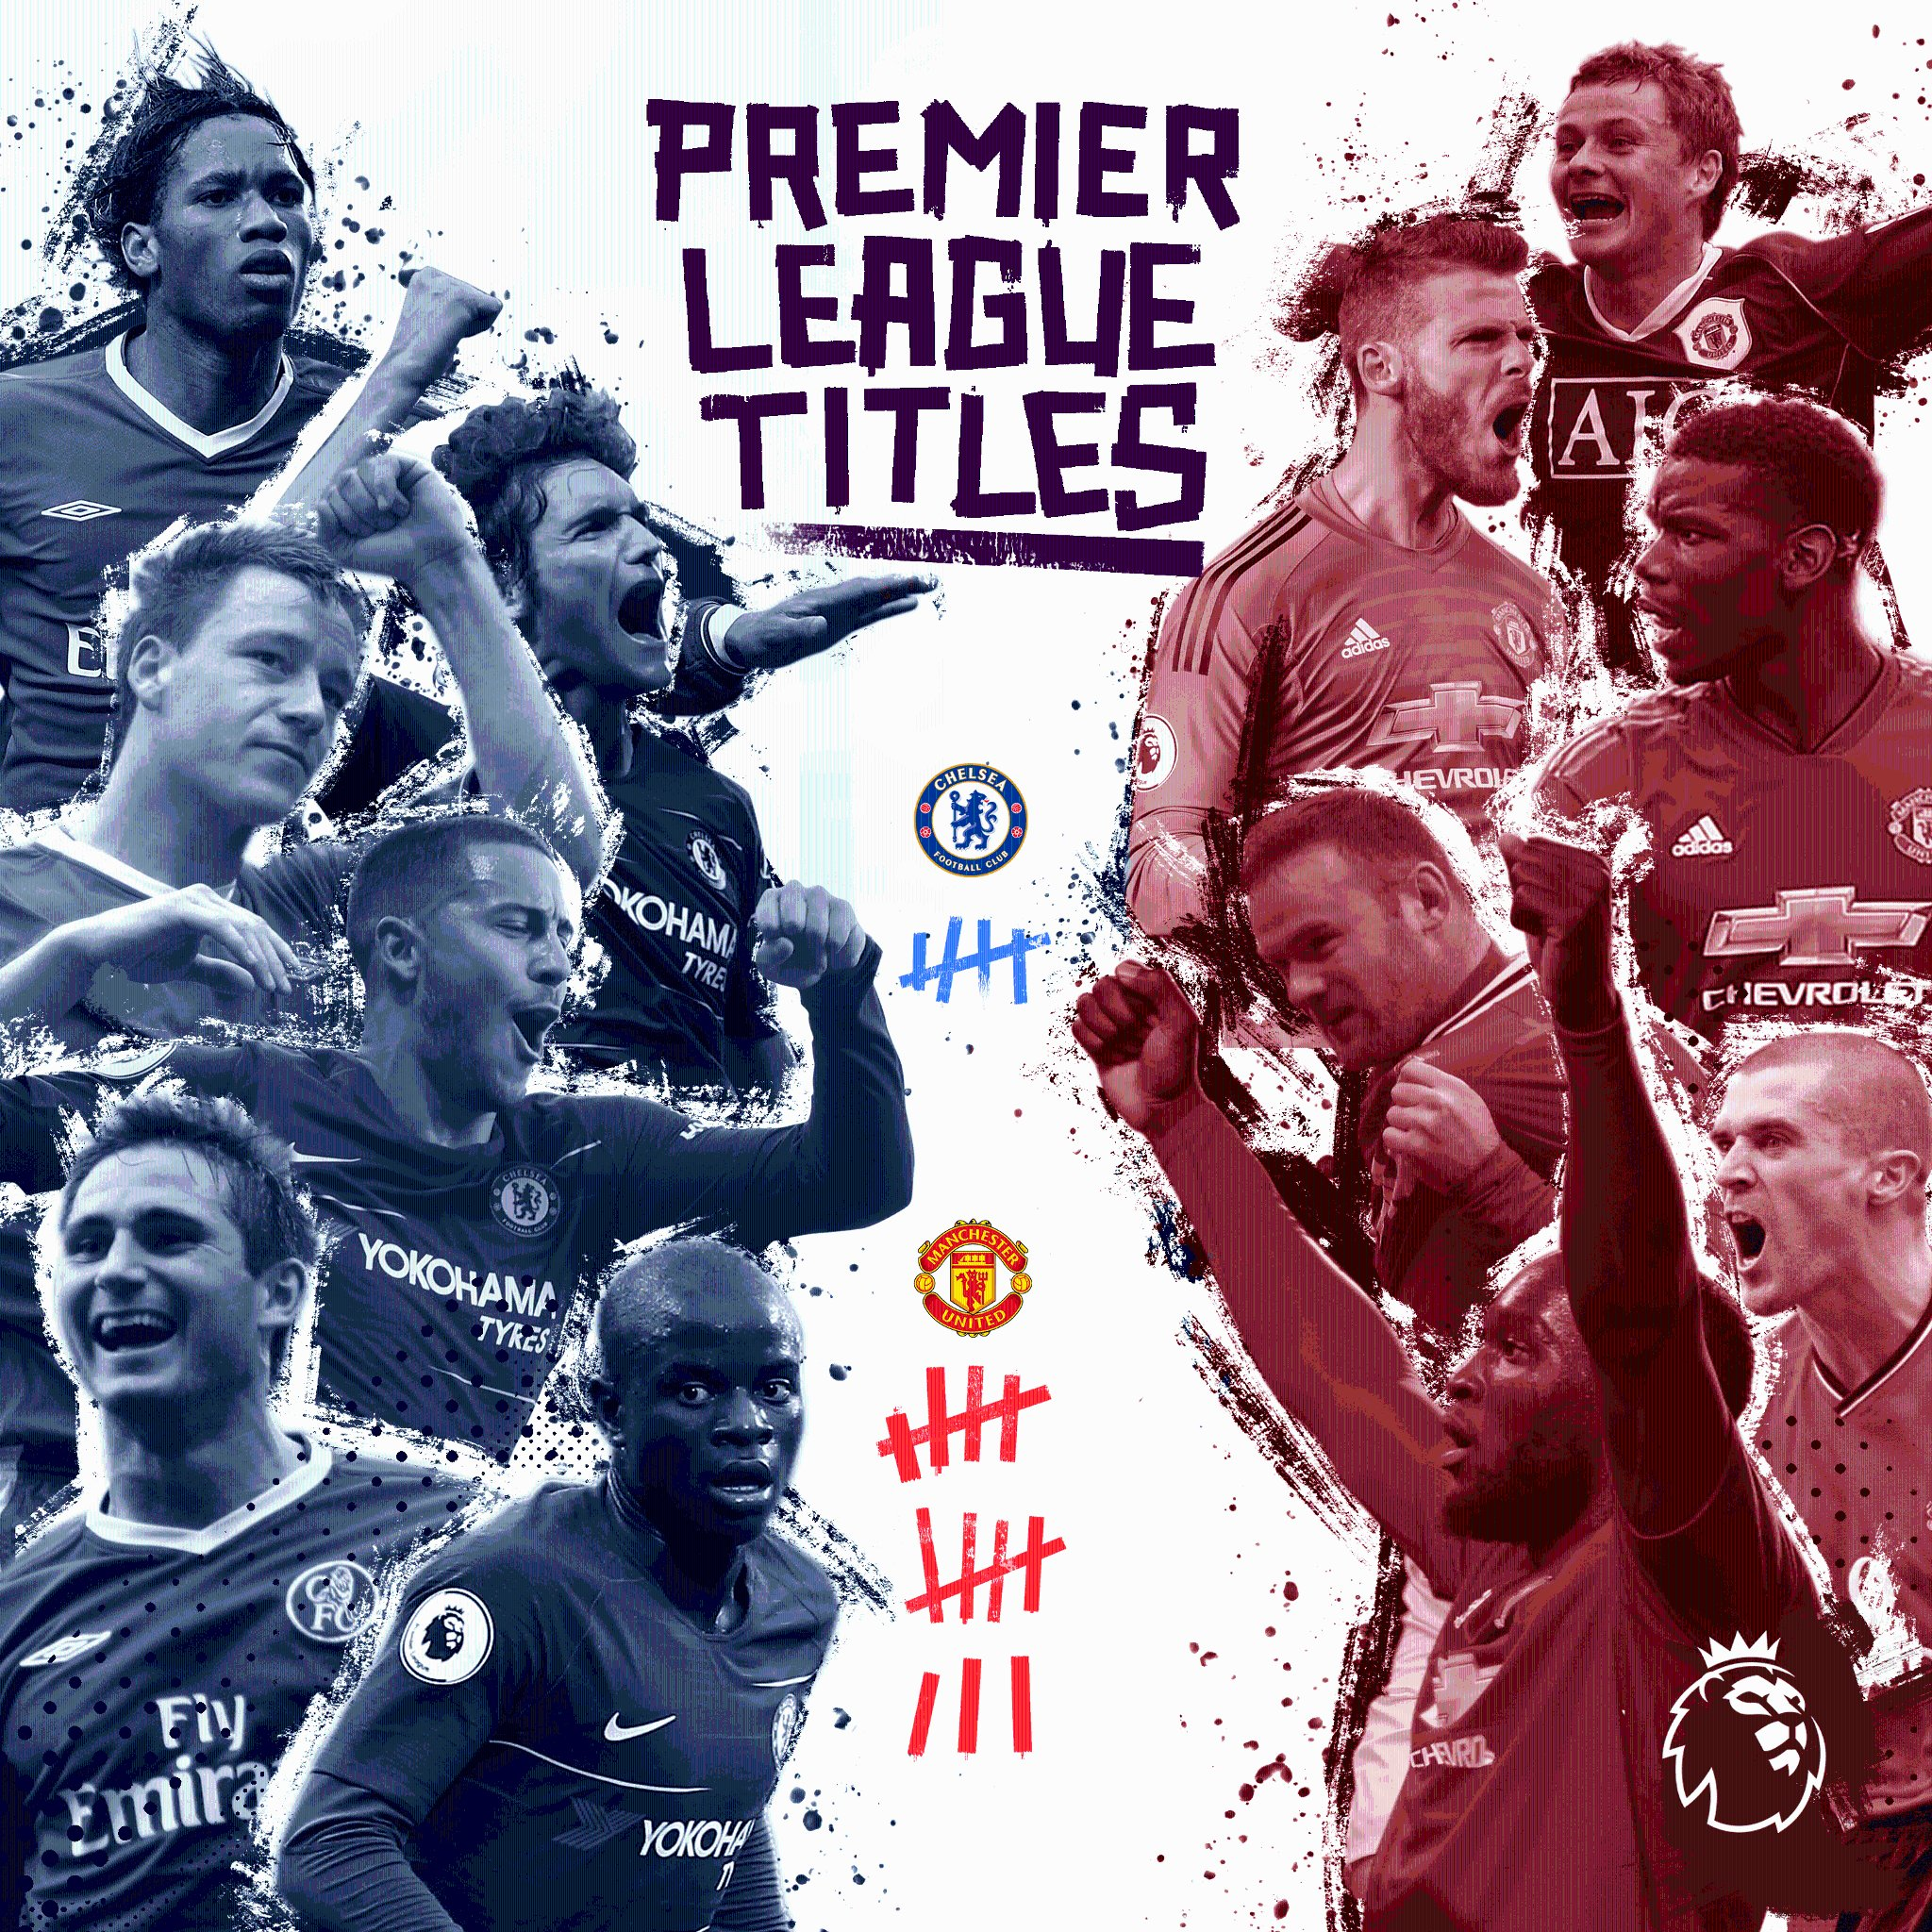 #CHEMUN   A fixture with #PL history... https://t.co/JV7ZpMsAB8